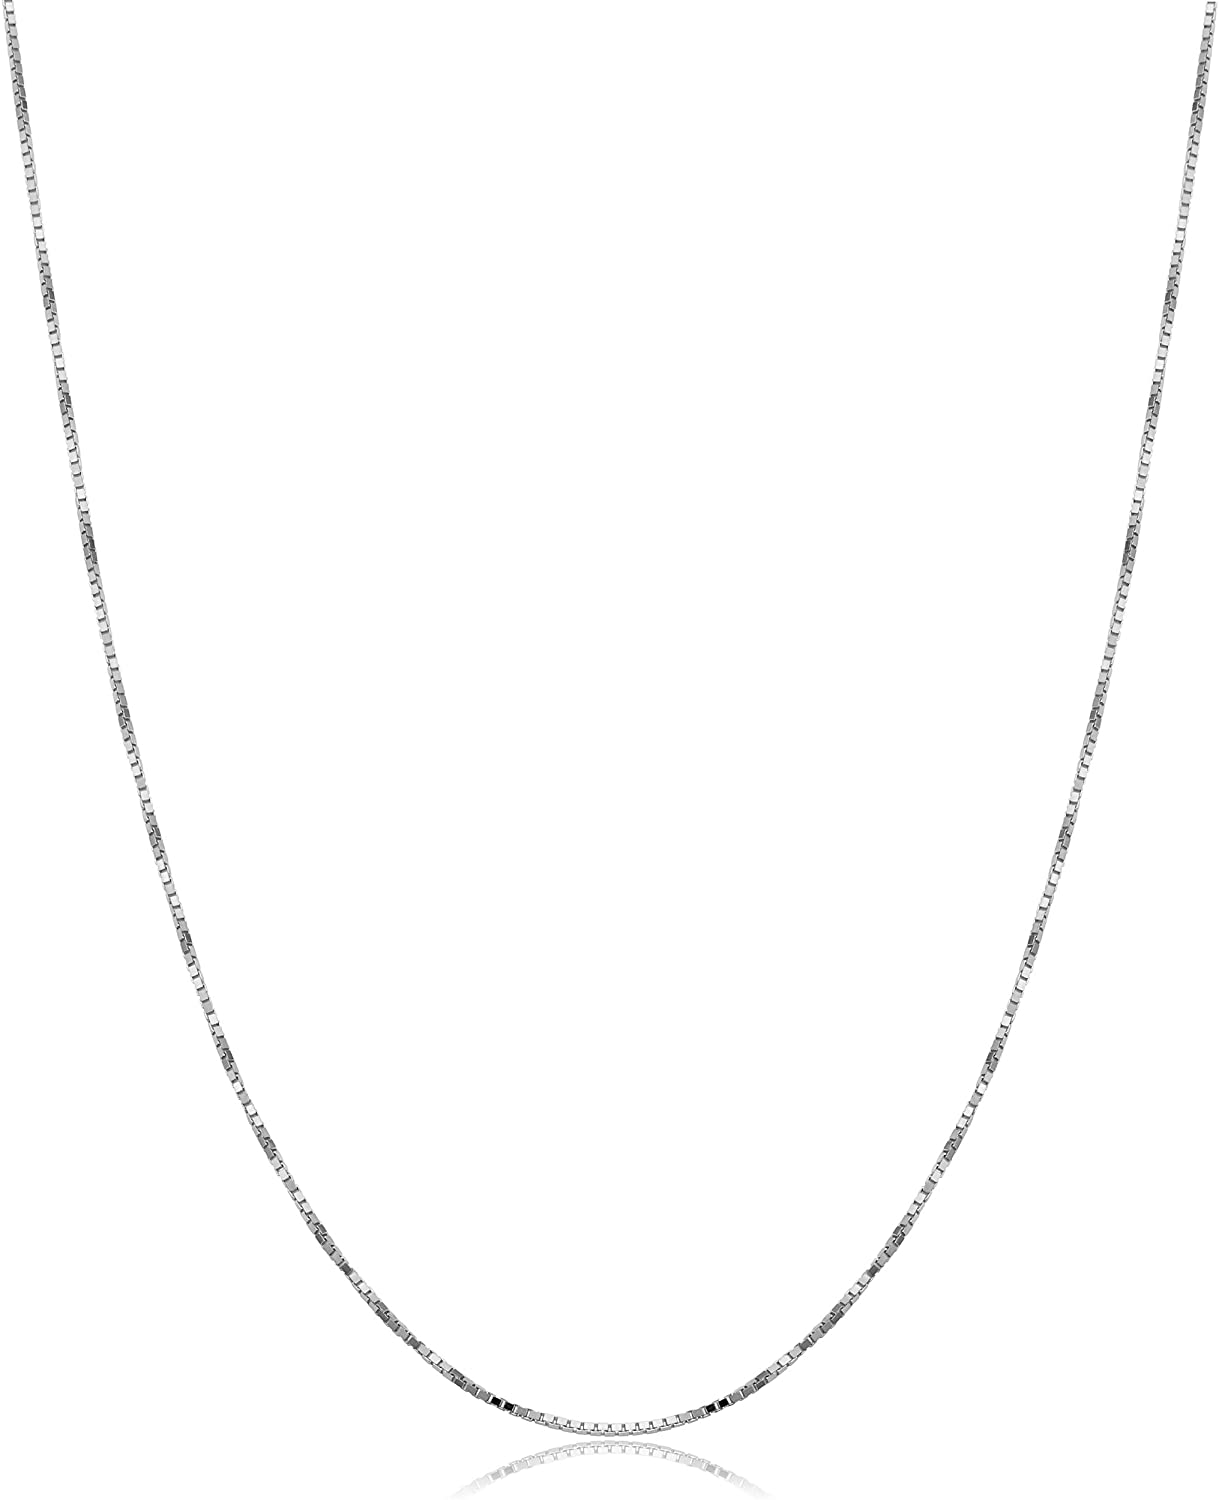 Kooljewelry 10k Yellow Gold or White Gold 0.7 mm THIN Box Chain Necklace for Women (16, 18, 20, 22, 24 or 30 inch)